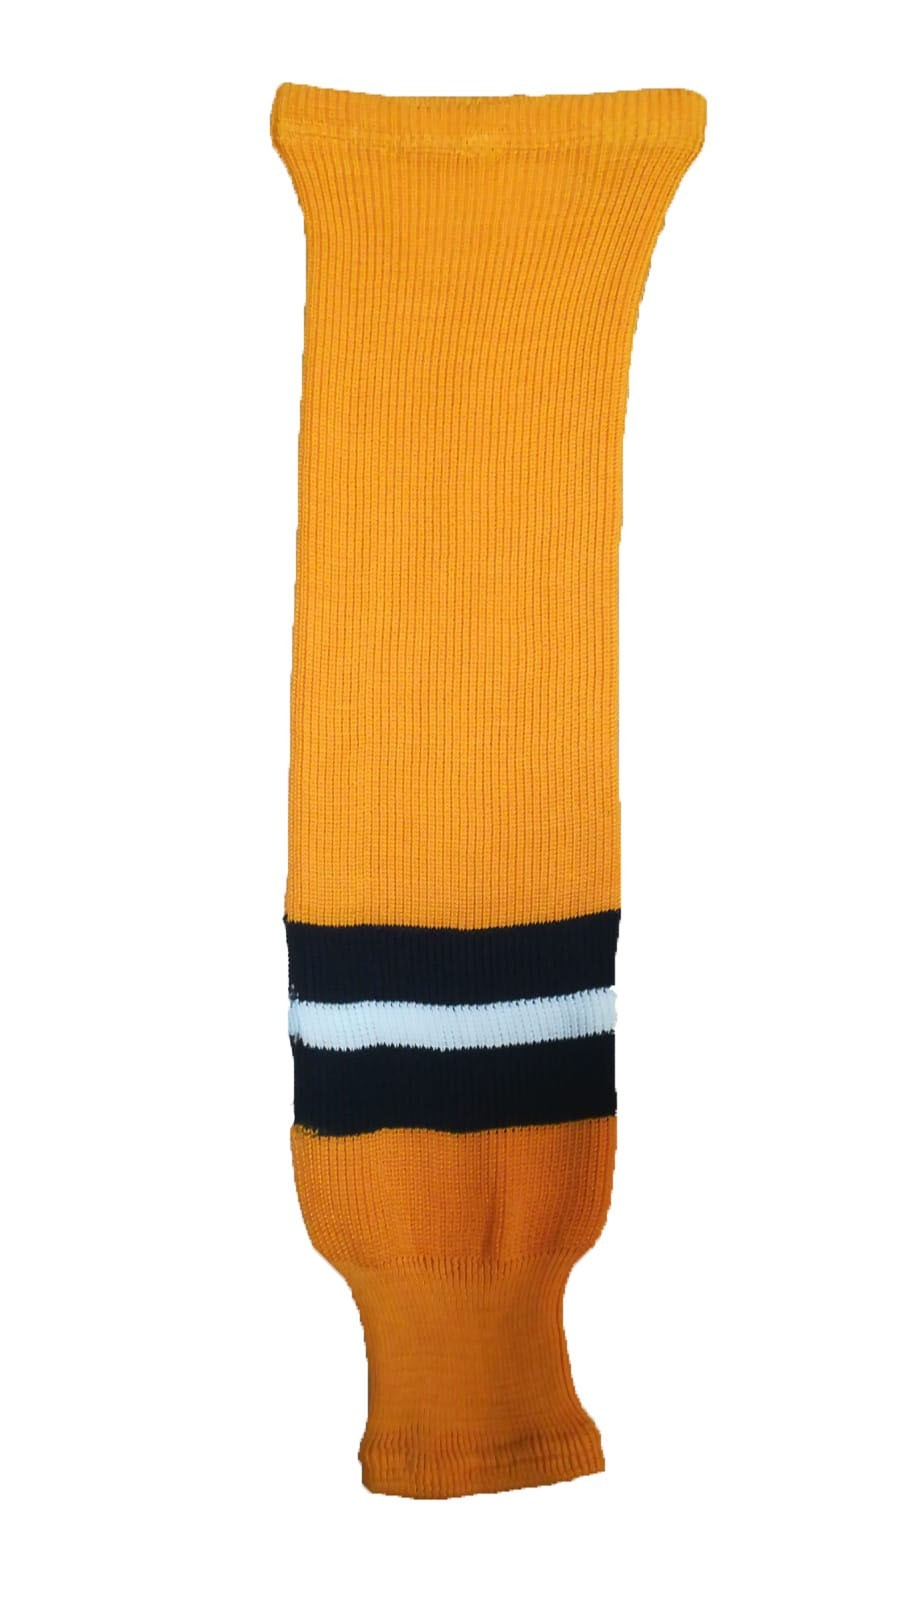 HOKEJAM.LV Knit Adult Hockey Socks#002